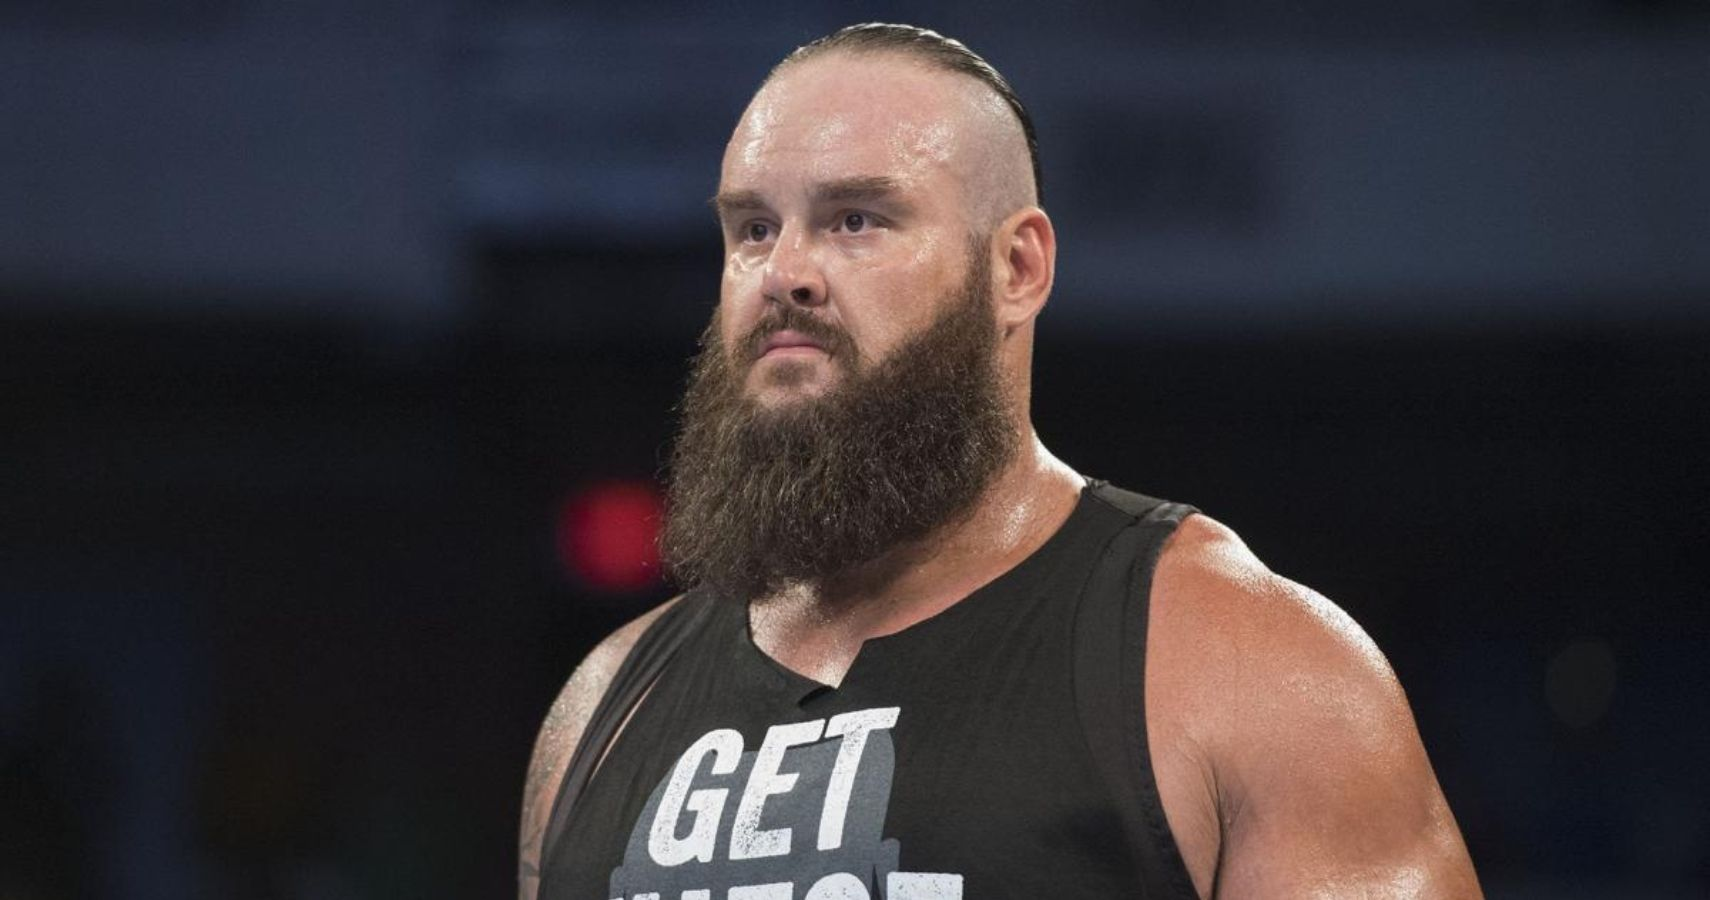 Braun Strowman Shows Off Insane Physique Following Release From WWE